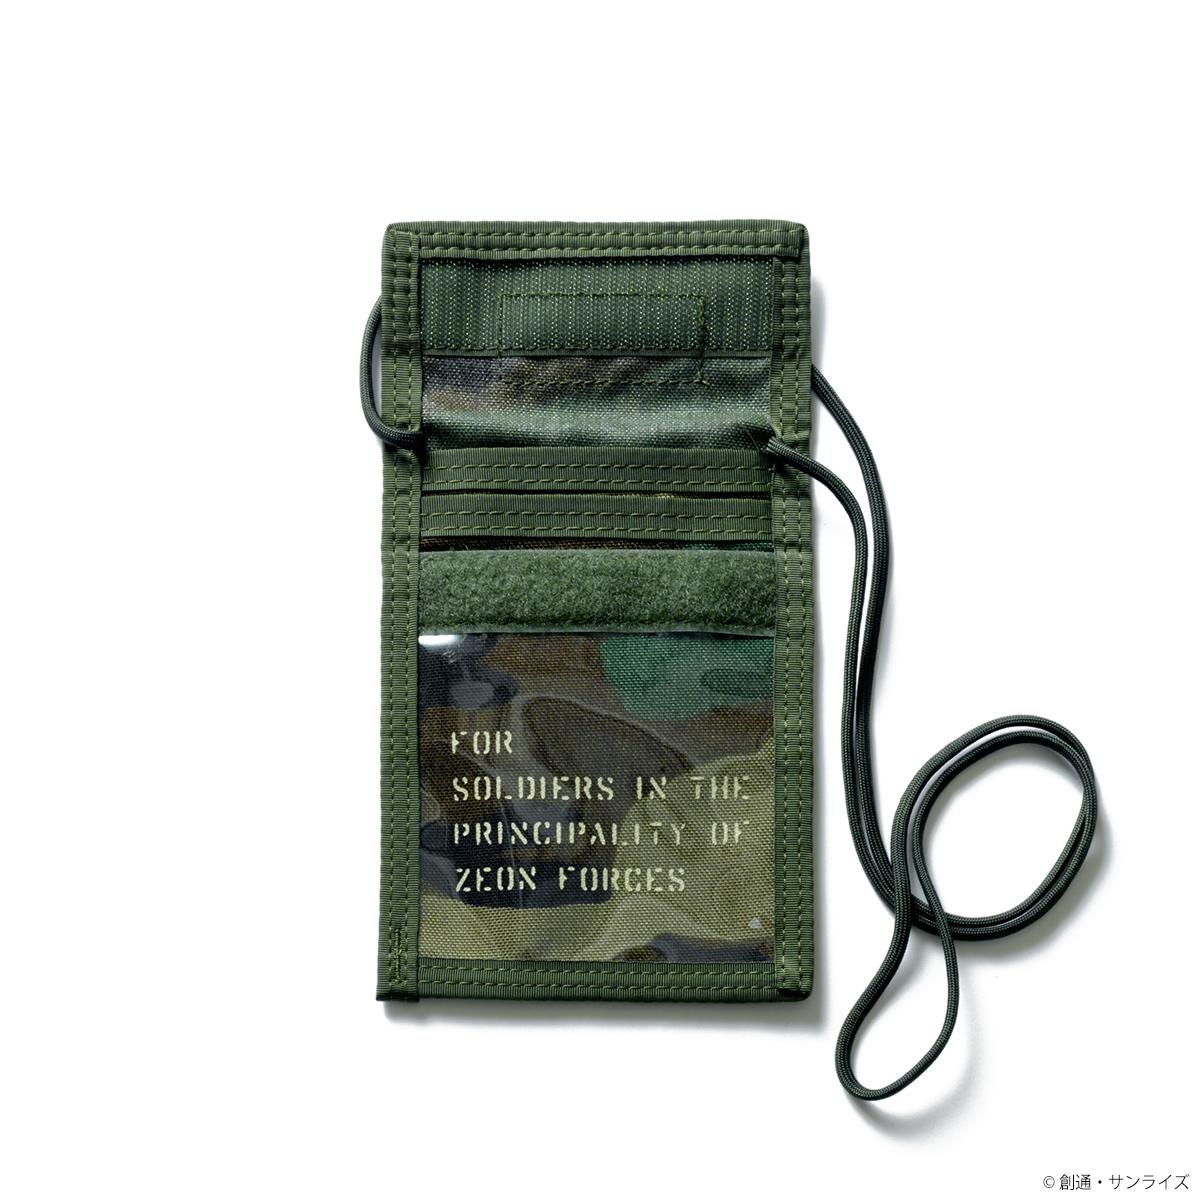 STRICT-G.ARMS M.I.S.『機動戦士ガンダム』PASSPORT CASE ZEON FORCES